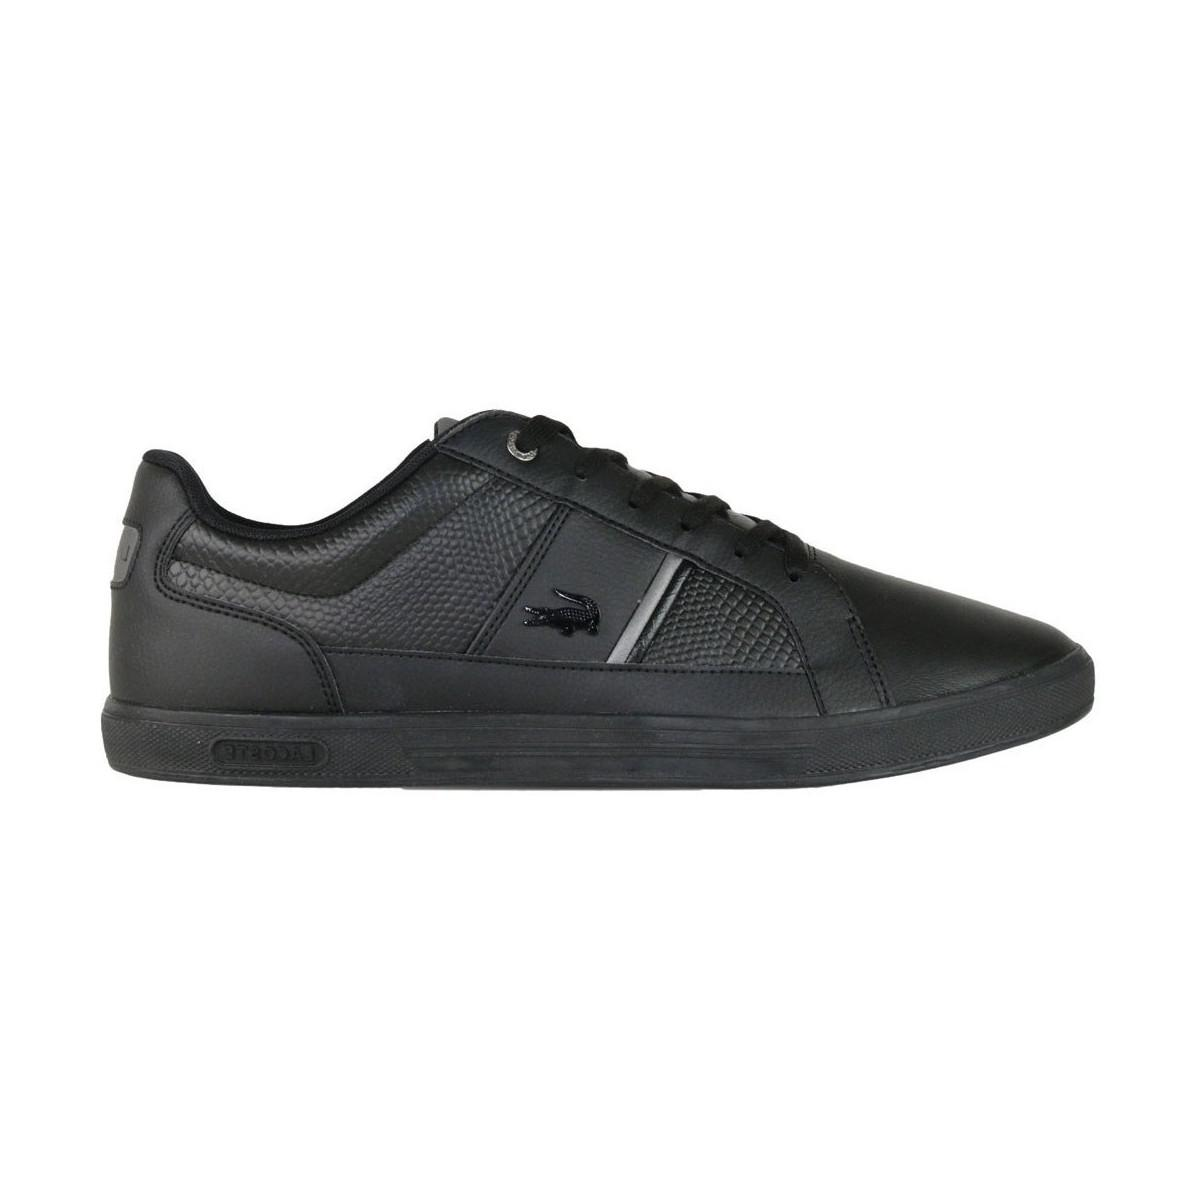 69d223b118f82f Lacoste Europa 417 Spm Blk Men s Shoes (trainers) In Grey in Gray ...